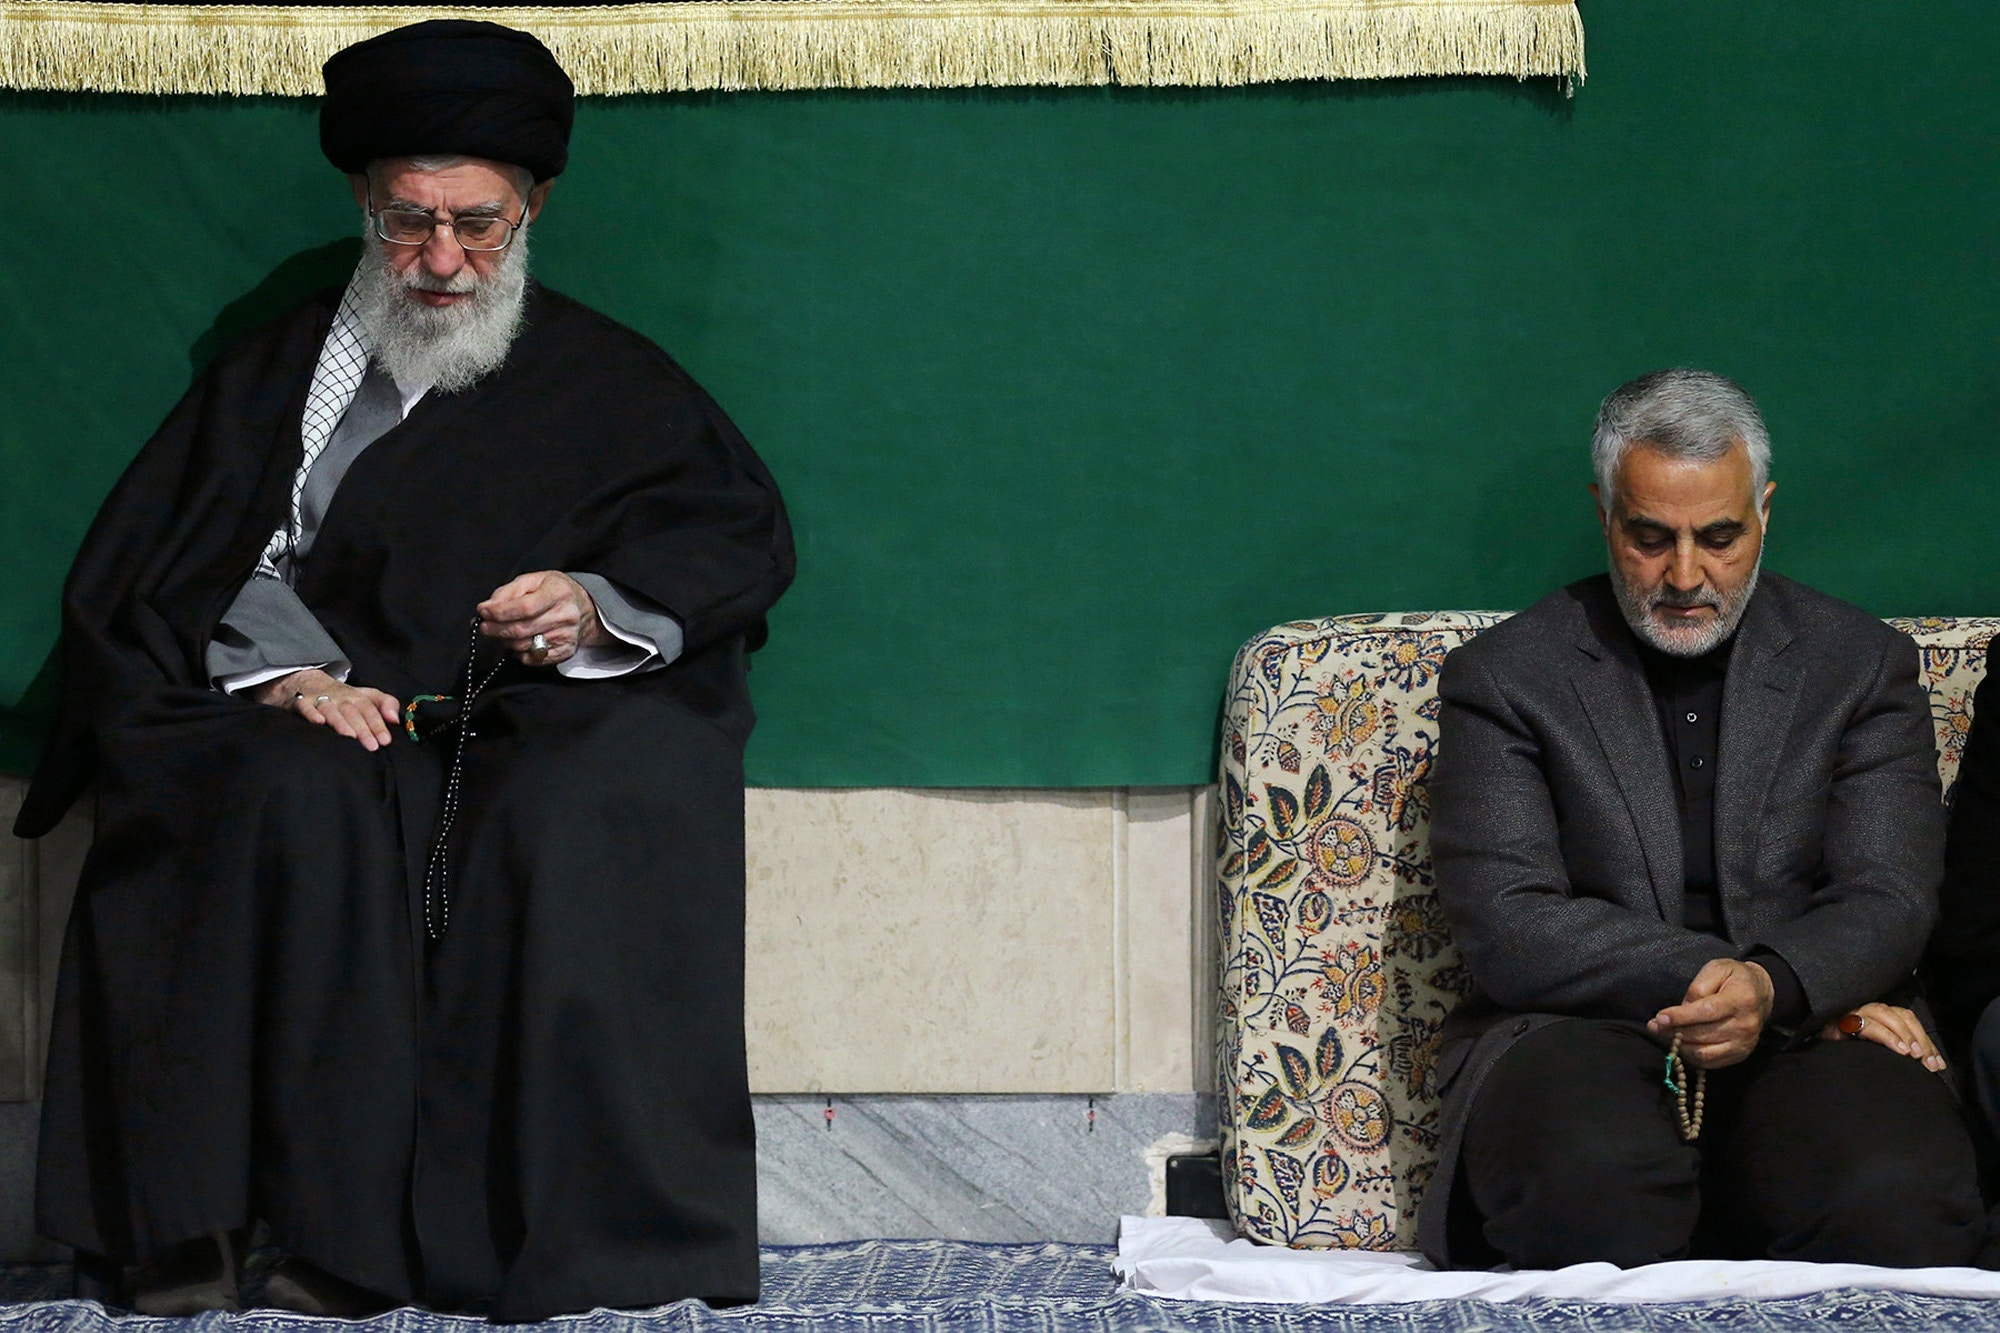 suleimani-khamenei-office-of-the-iranian-supreme-leader-via-AP-1574035787